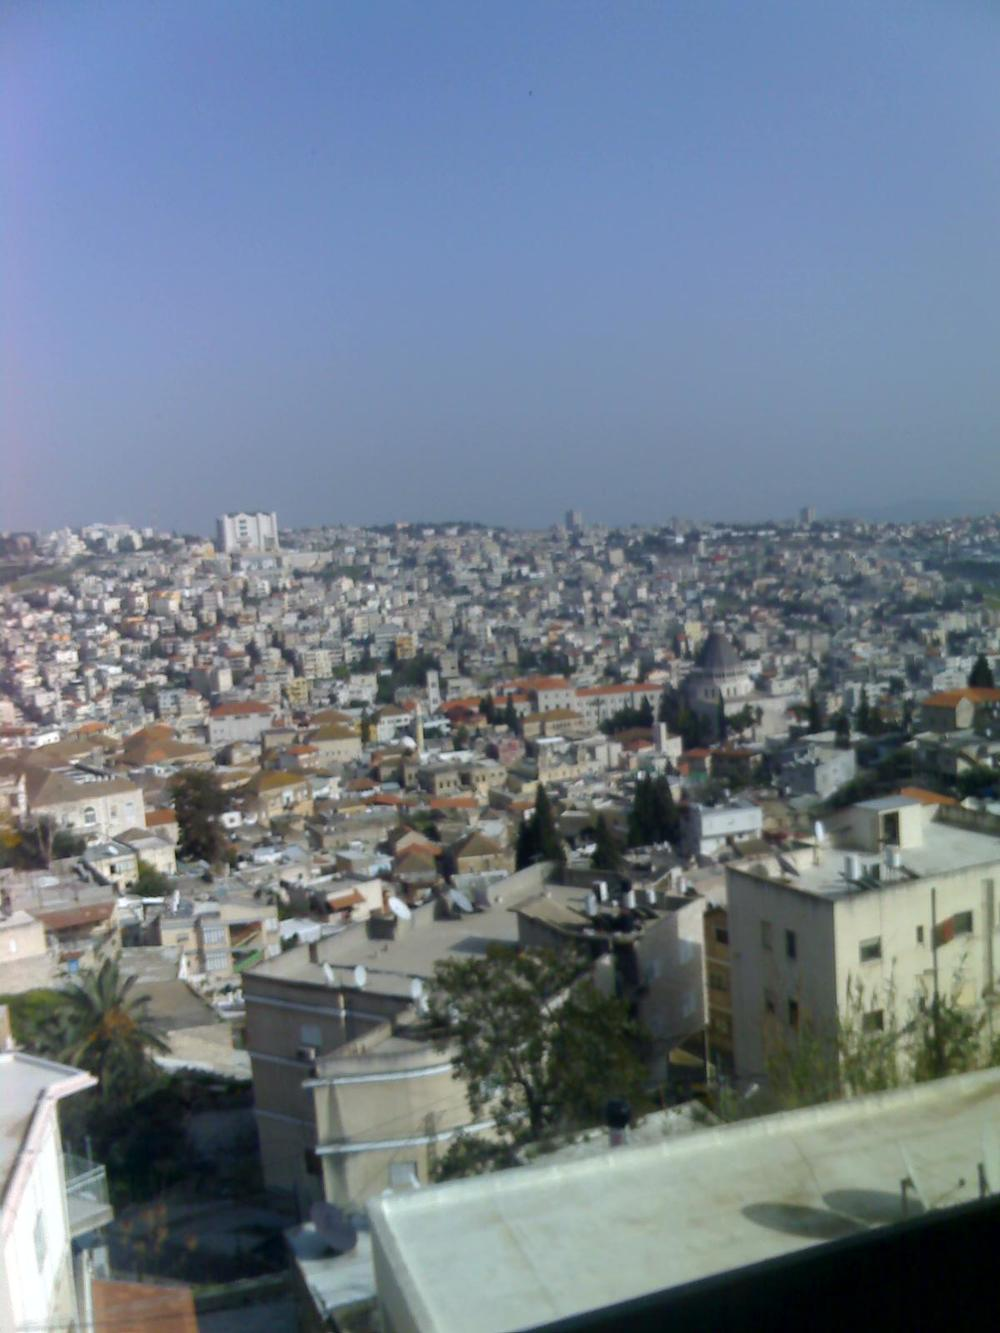 A view of Nazareth. Credit: Wikimedia Commons.